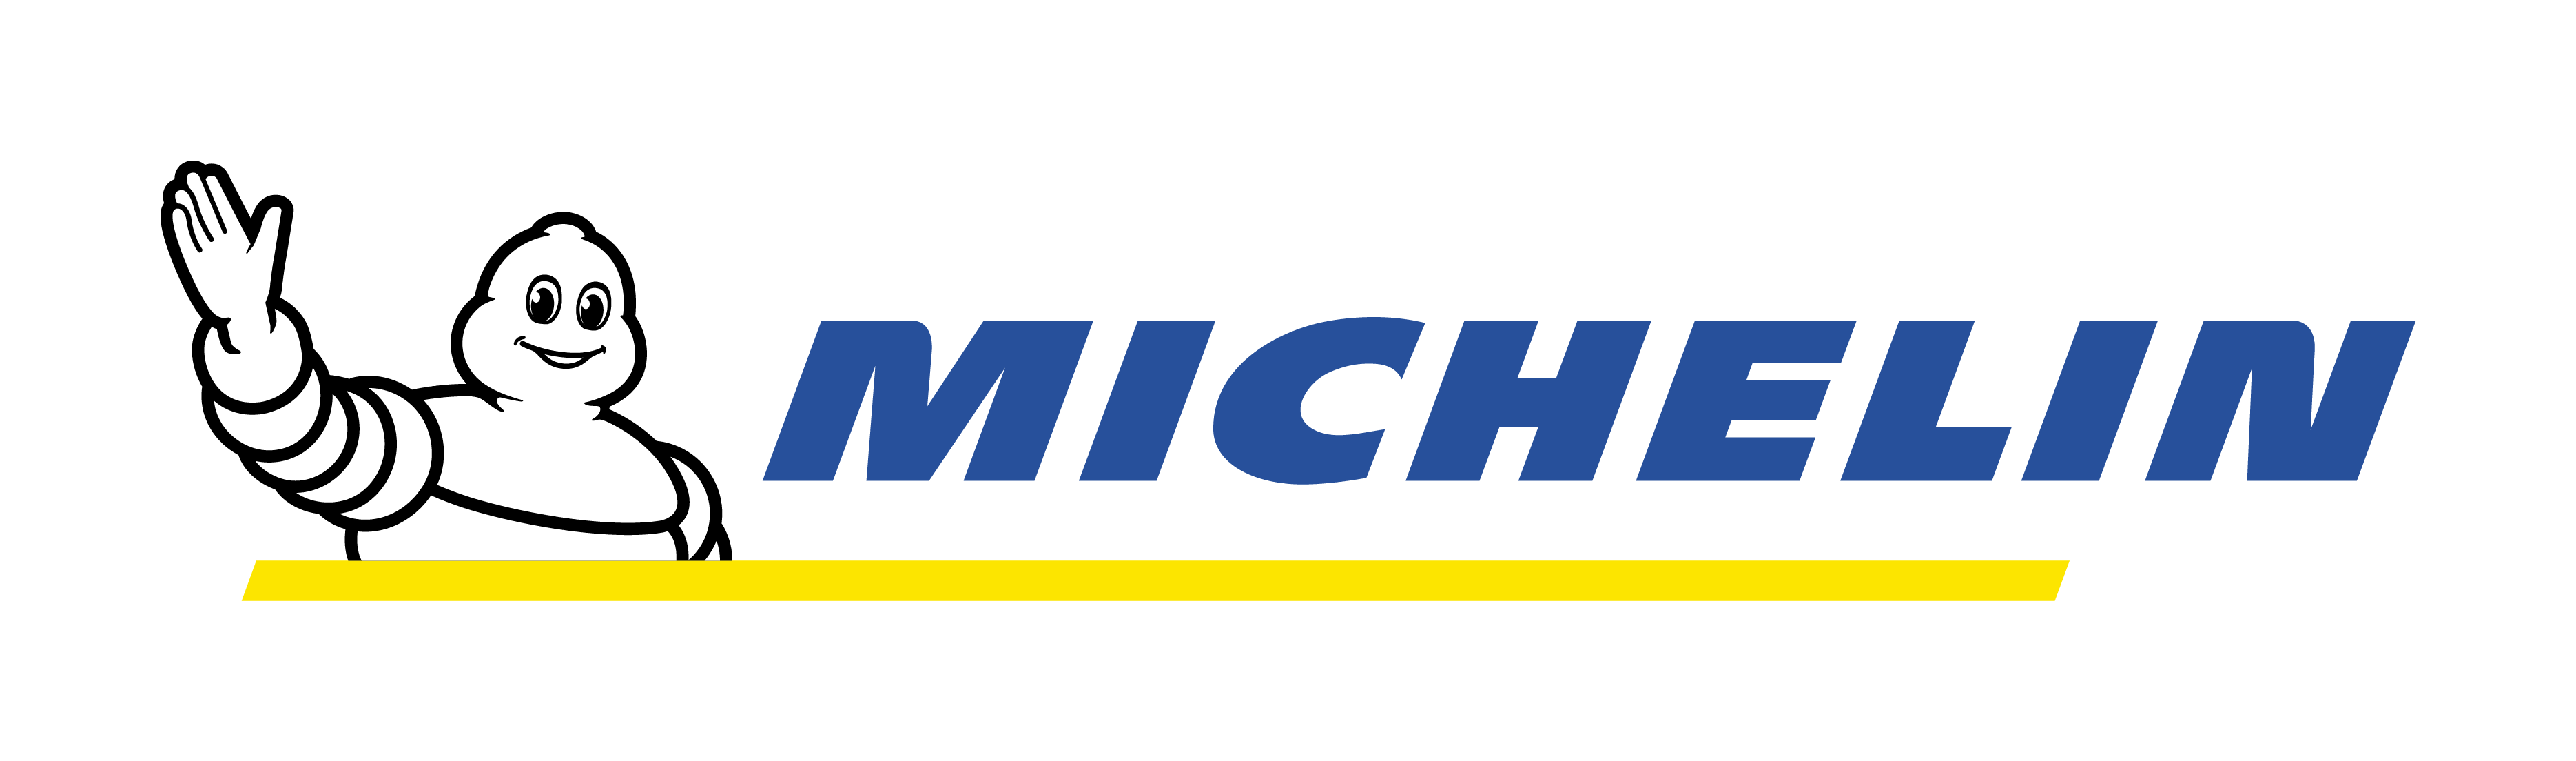 Michelin - A better way forward